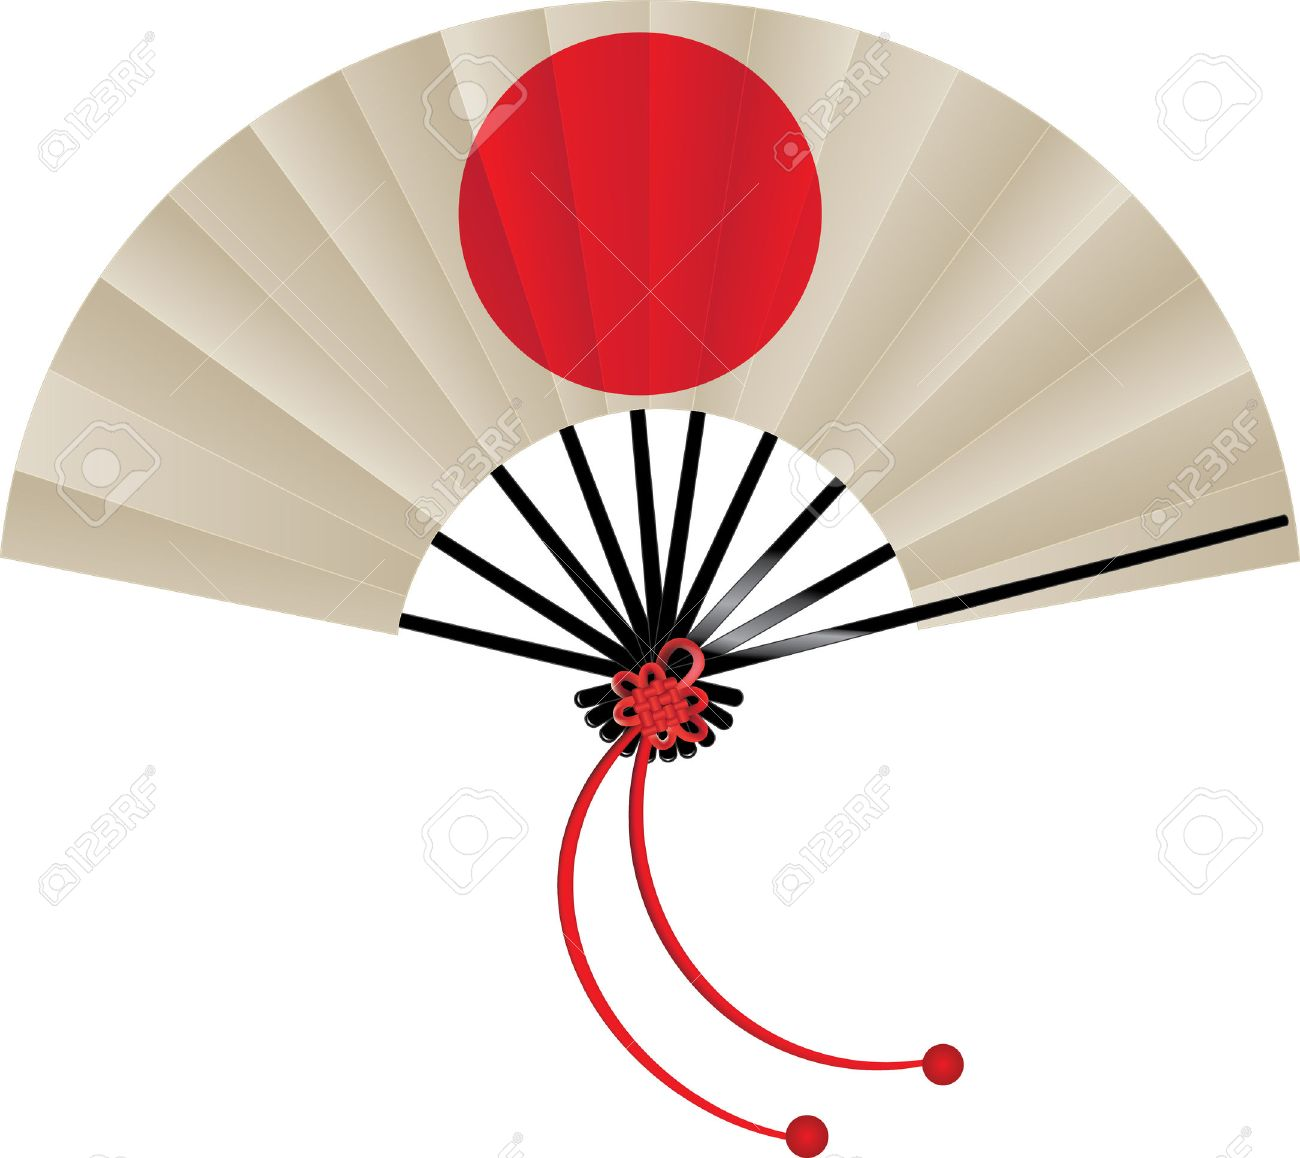 Vector illustration of Japanese flag fan with tie - 52899621